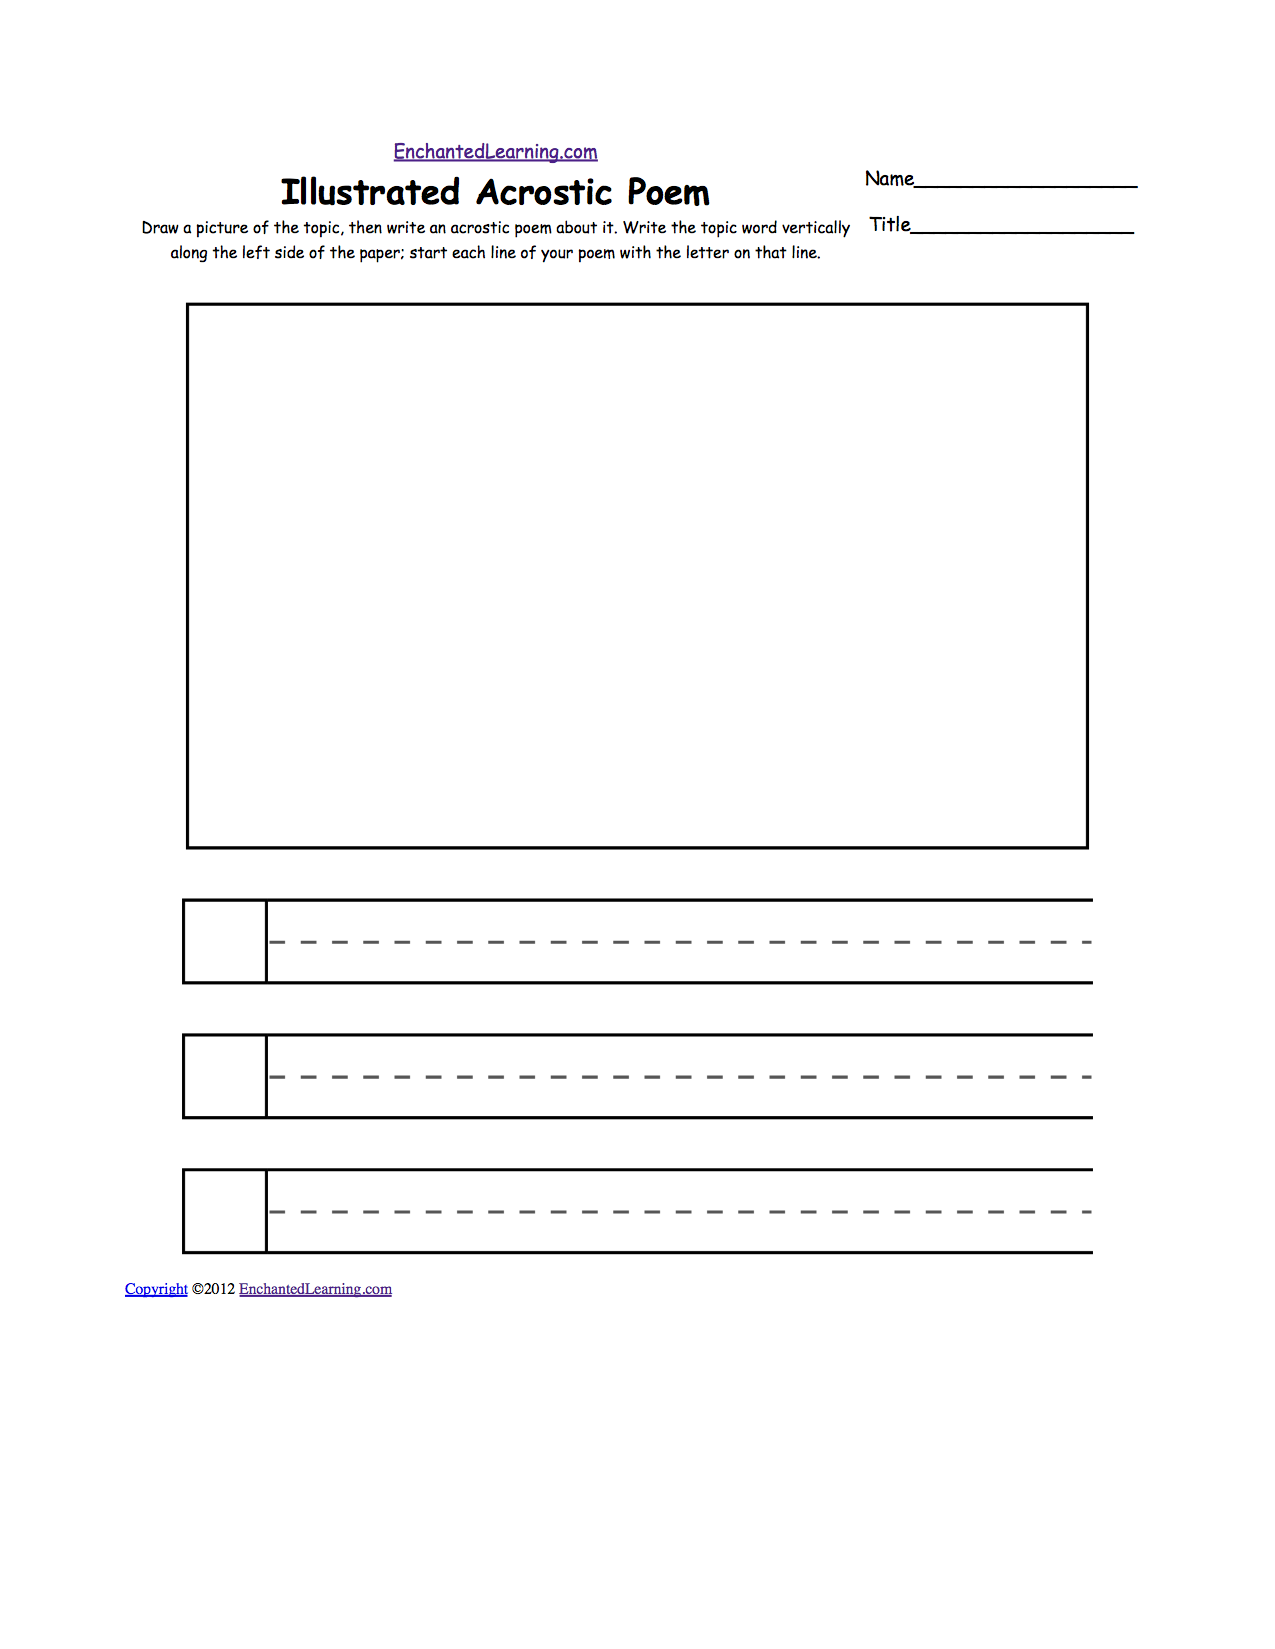 Blank Illustrated Acrostic Poem Worksheets (Handwriting Lines): Worksheet  Printout   EnchantedLearning.com  Notebook Paper Word Template